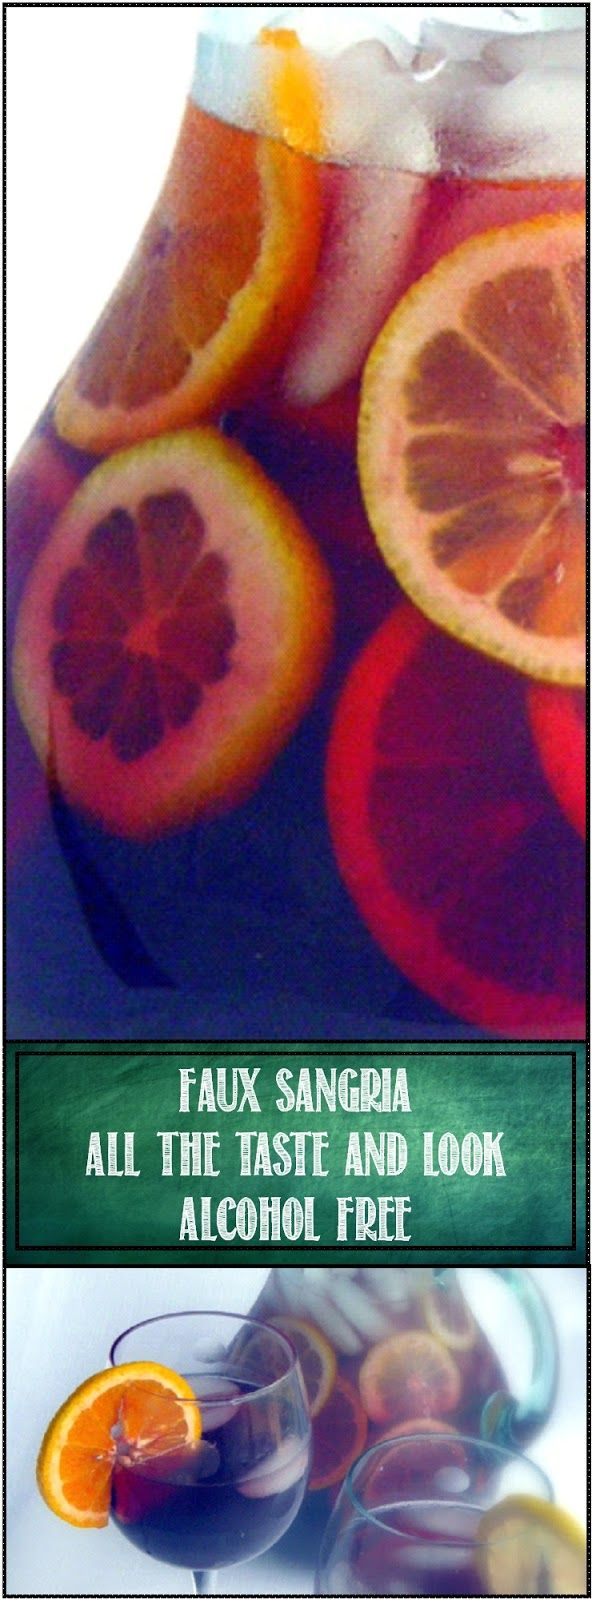 Faux Sangria - Sparkling Iced Tea, Alcohol Free BUT all the Taste and look of Sangria... Sometimes non booze drinkers feel left out... But not with a big pitcher of this . The look and even the taste of Sangria but totally Alcohol Free... Looks Good and TASTES GREAT!!!